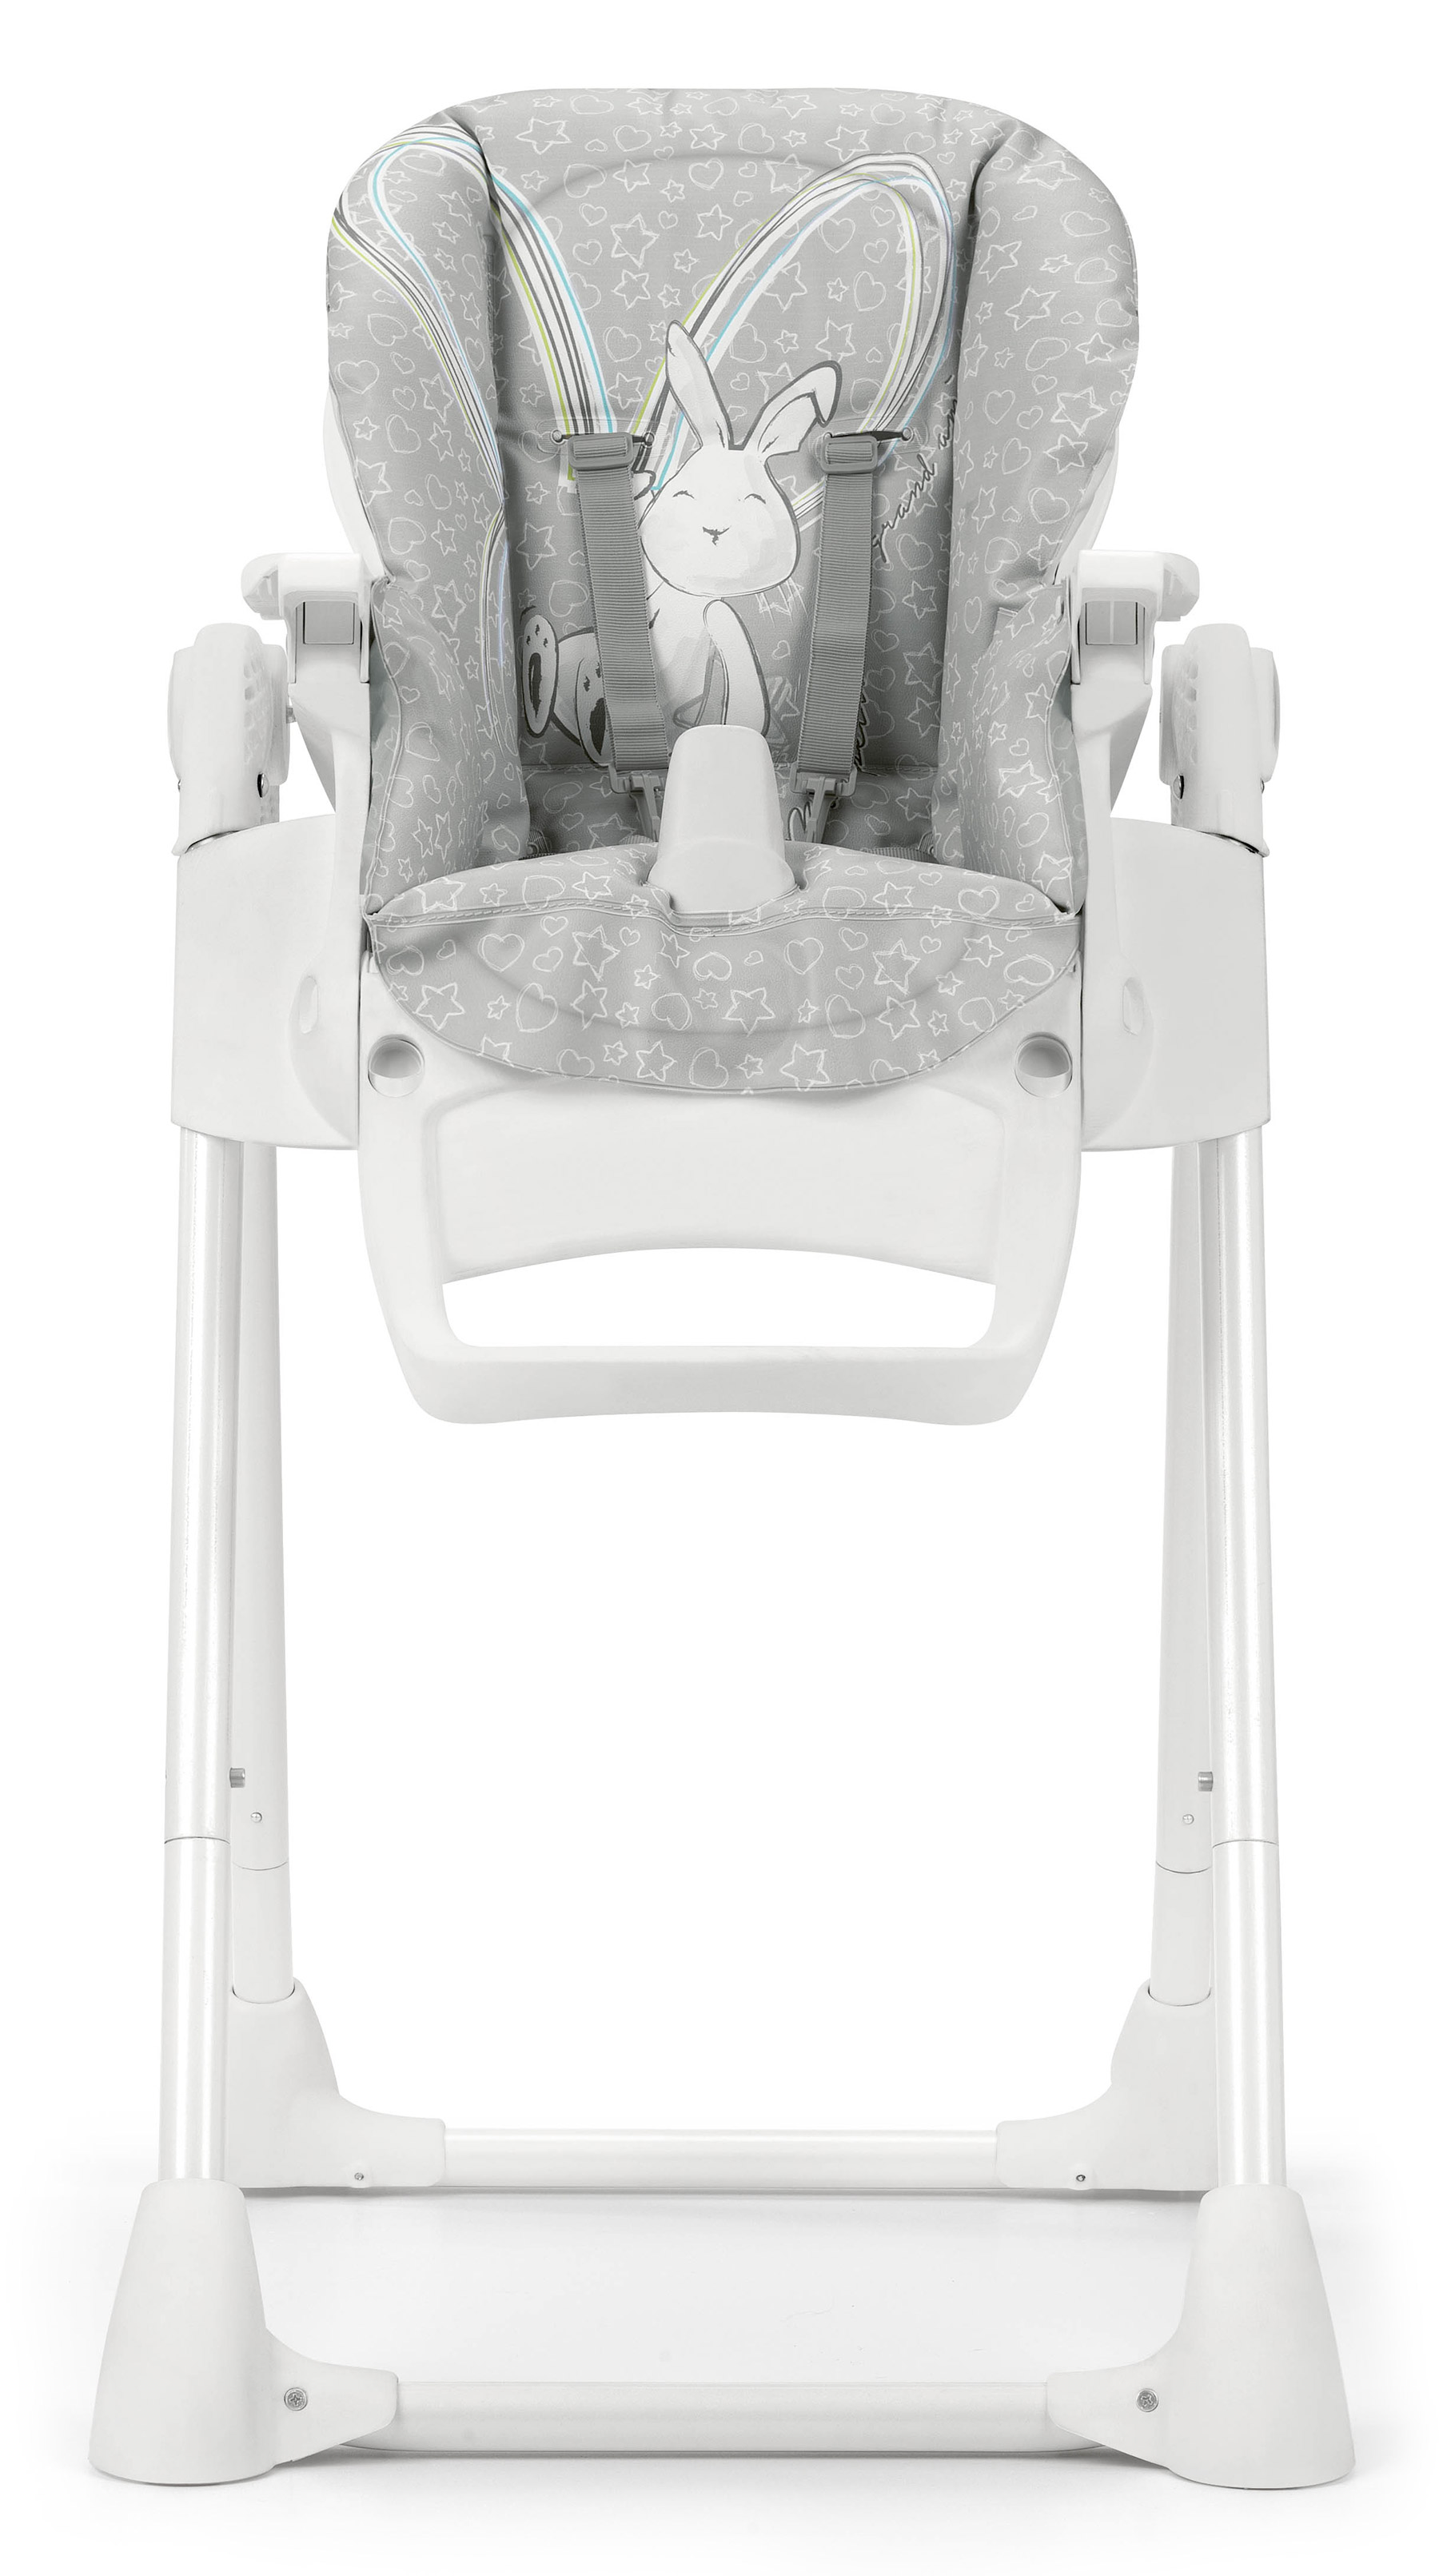 buy baby high chairs stool chair used cam pappananna s2250 series in dubai